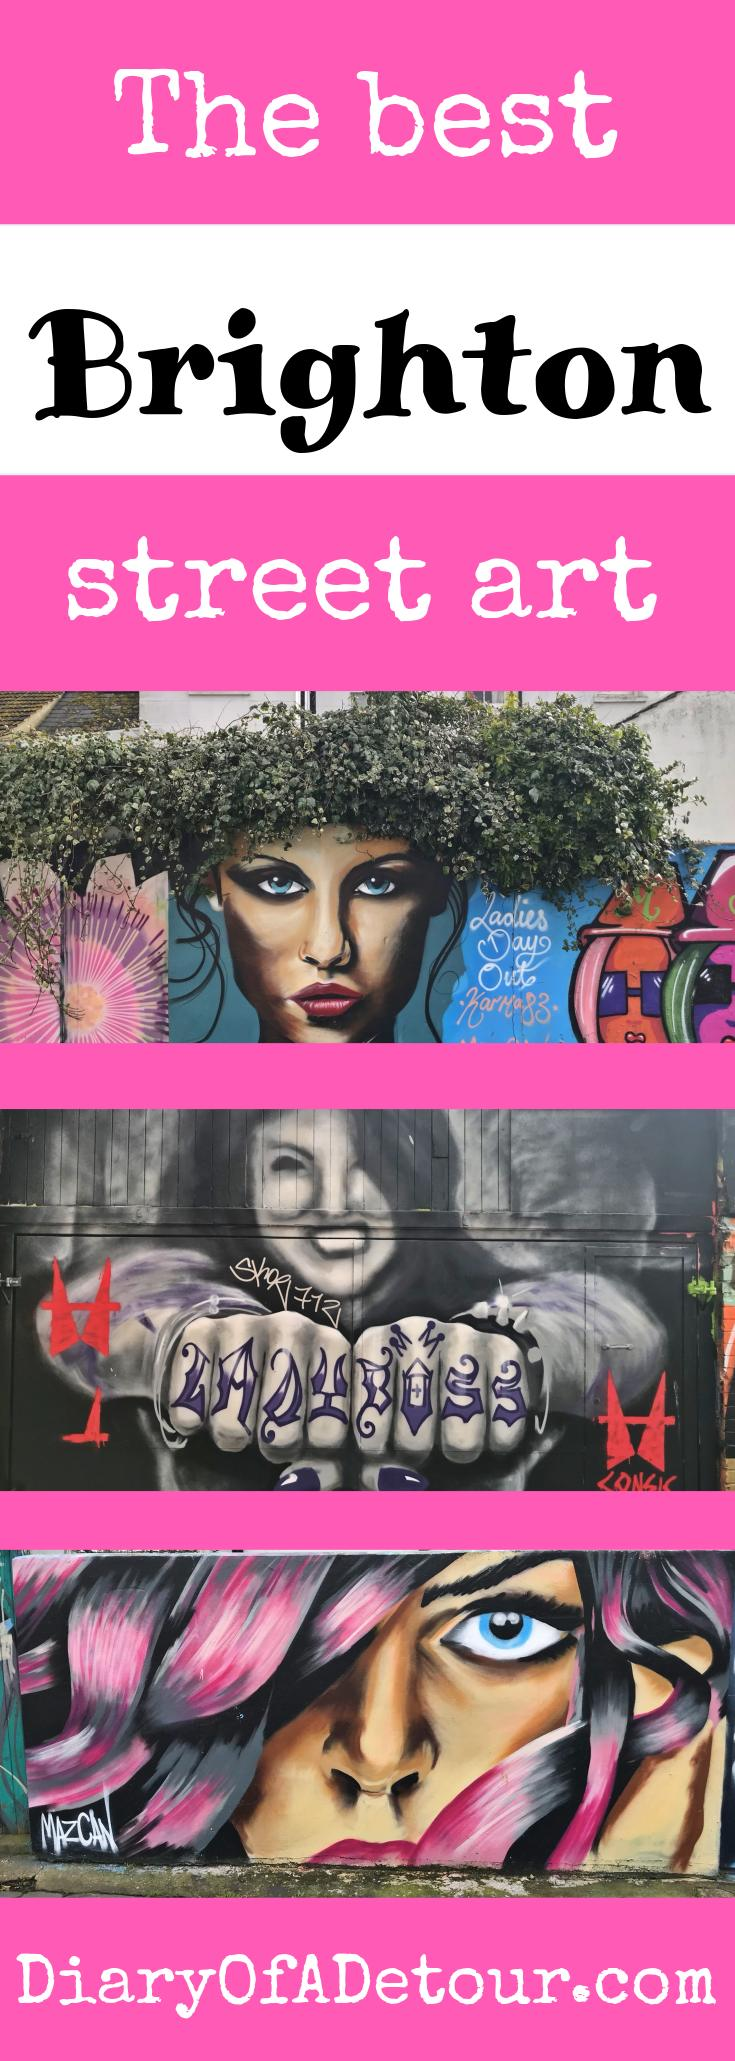 The best Brighton street art including Mazcan, Cosmo Sarson and Broke-Art